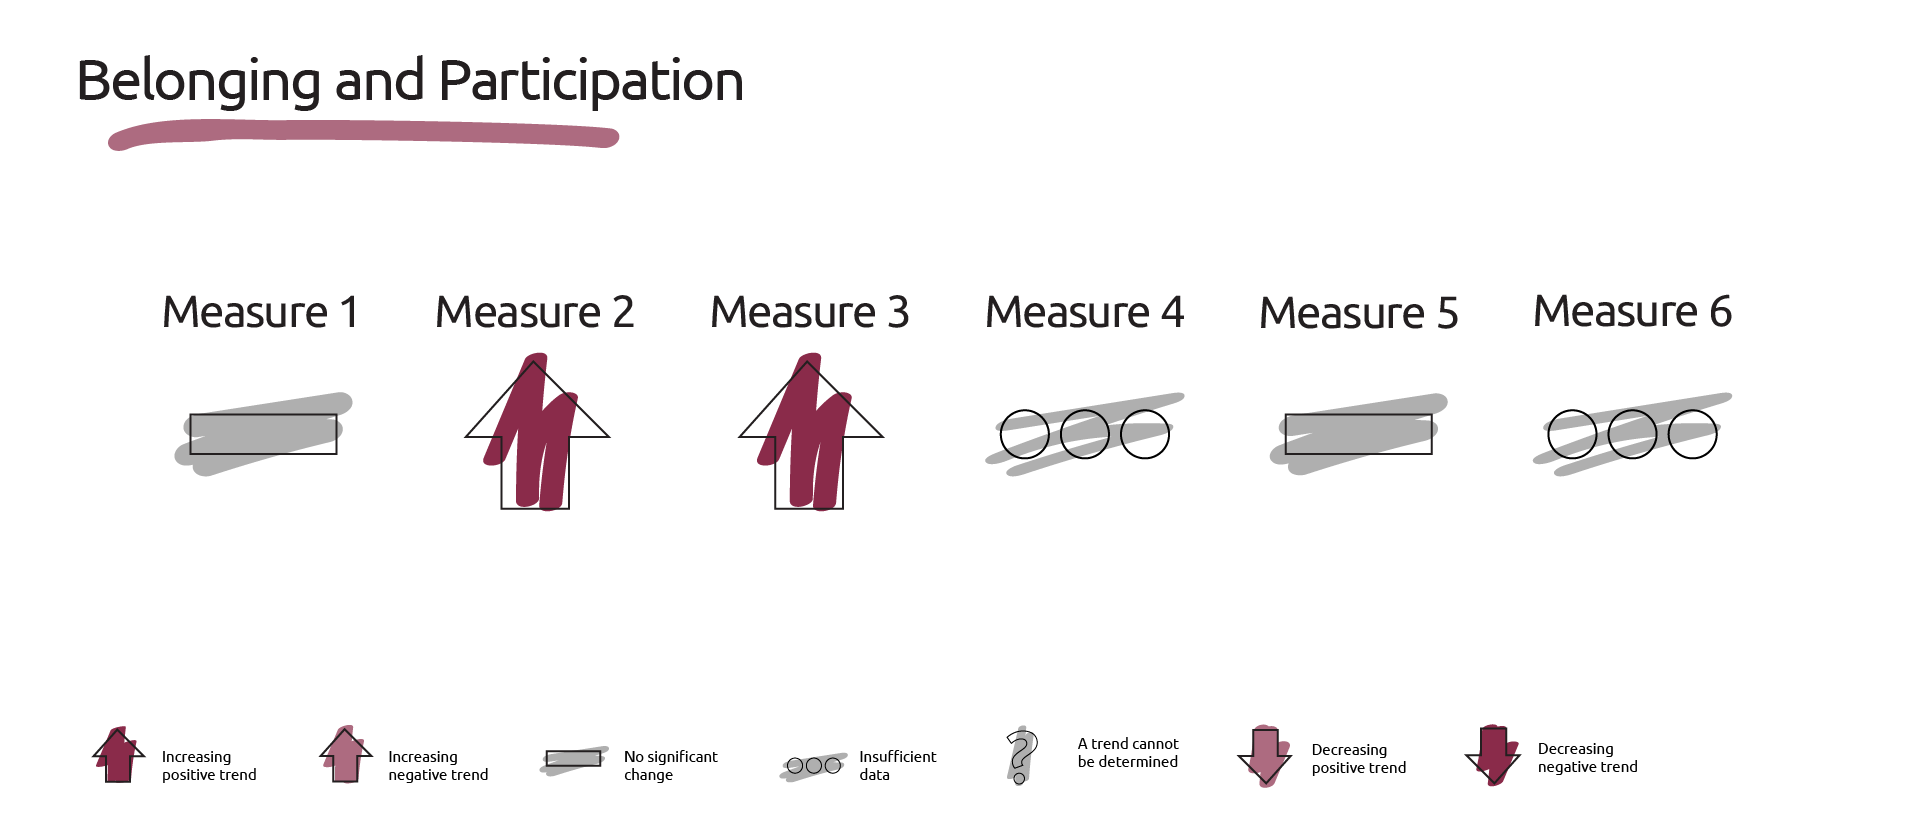 Image showing the dashboard of measures for belonging and participation.